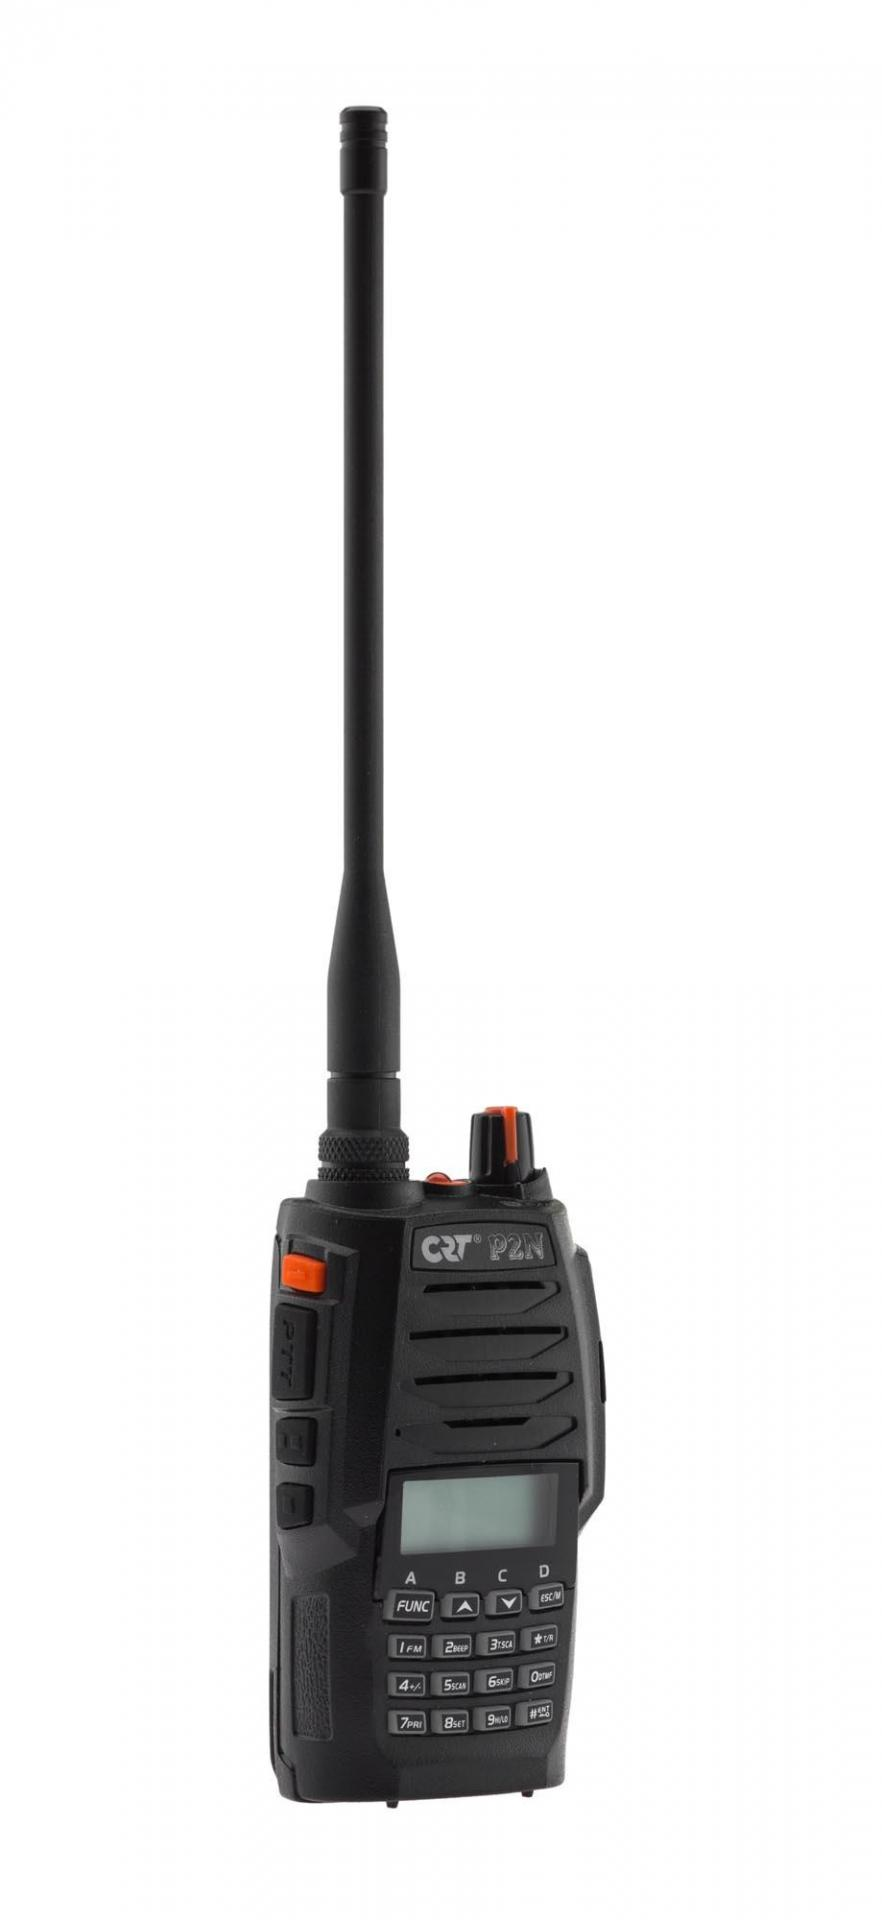 radio vhf radio amateur metteur r cepteur 144 146 mhz. Black Bedroom Furniture Sets. Home Design Ideas